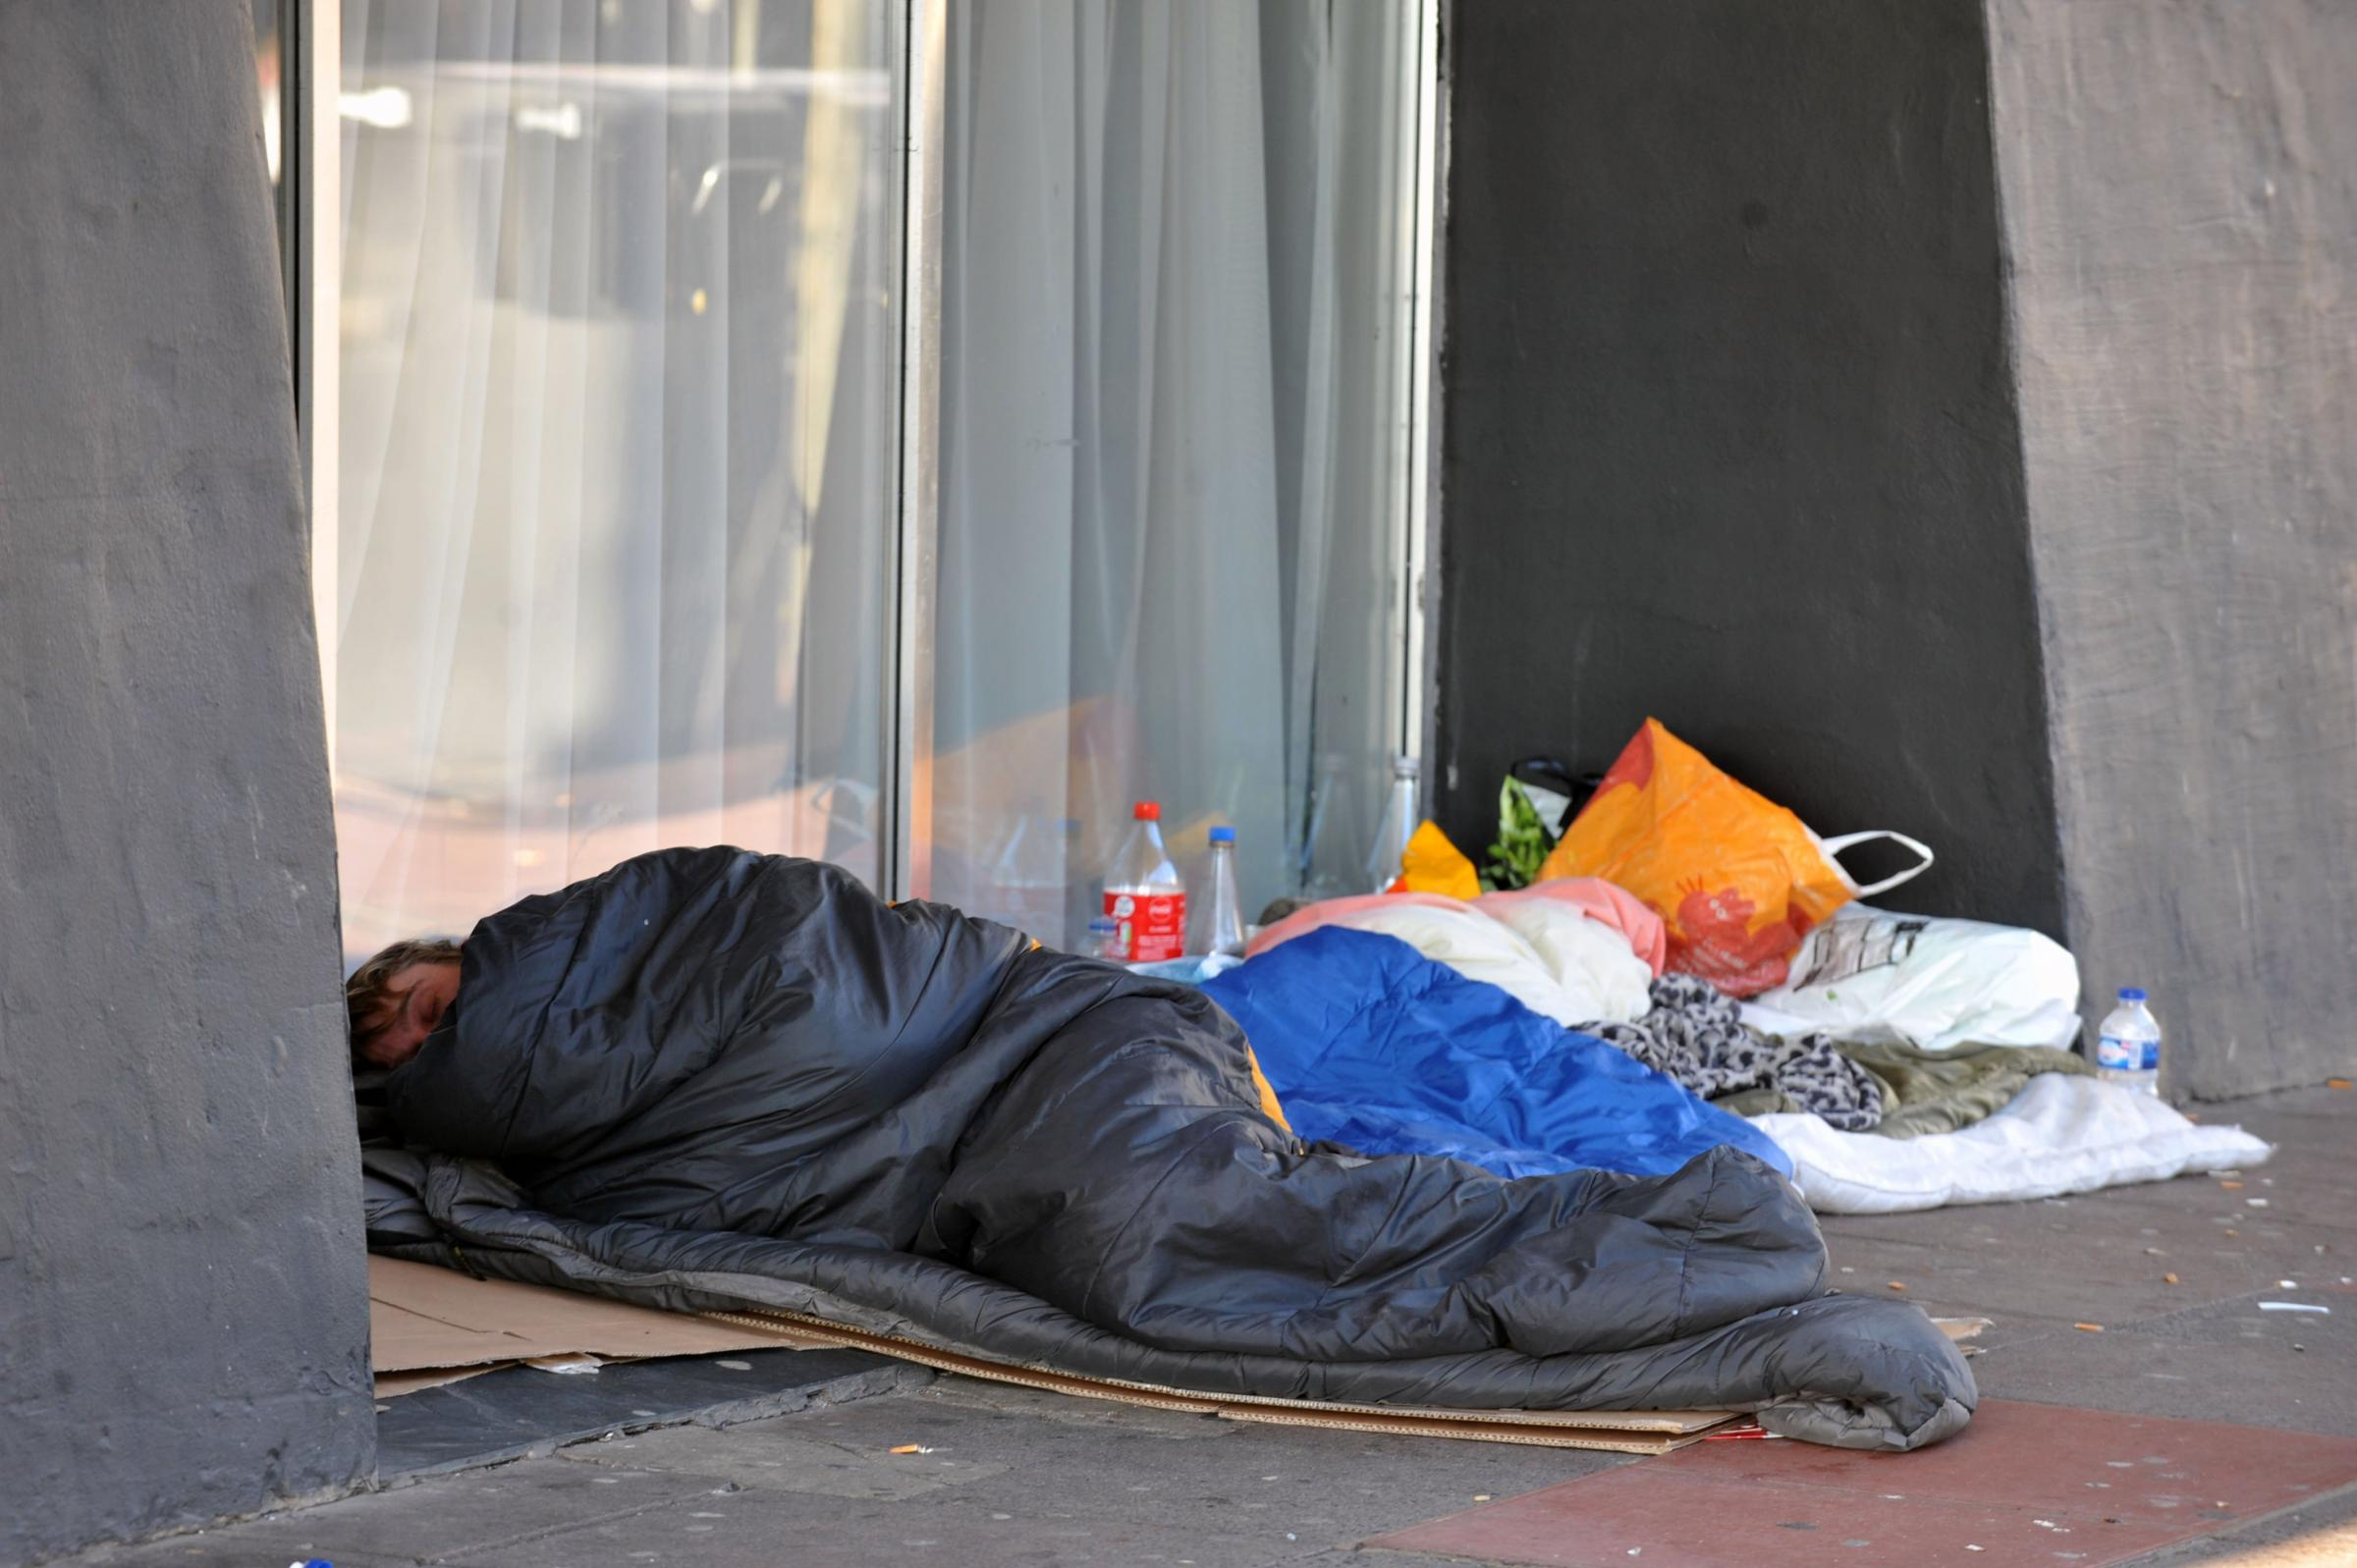 Brighton has a homeless crisis